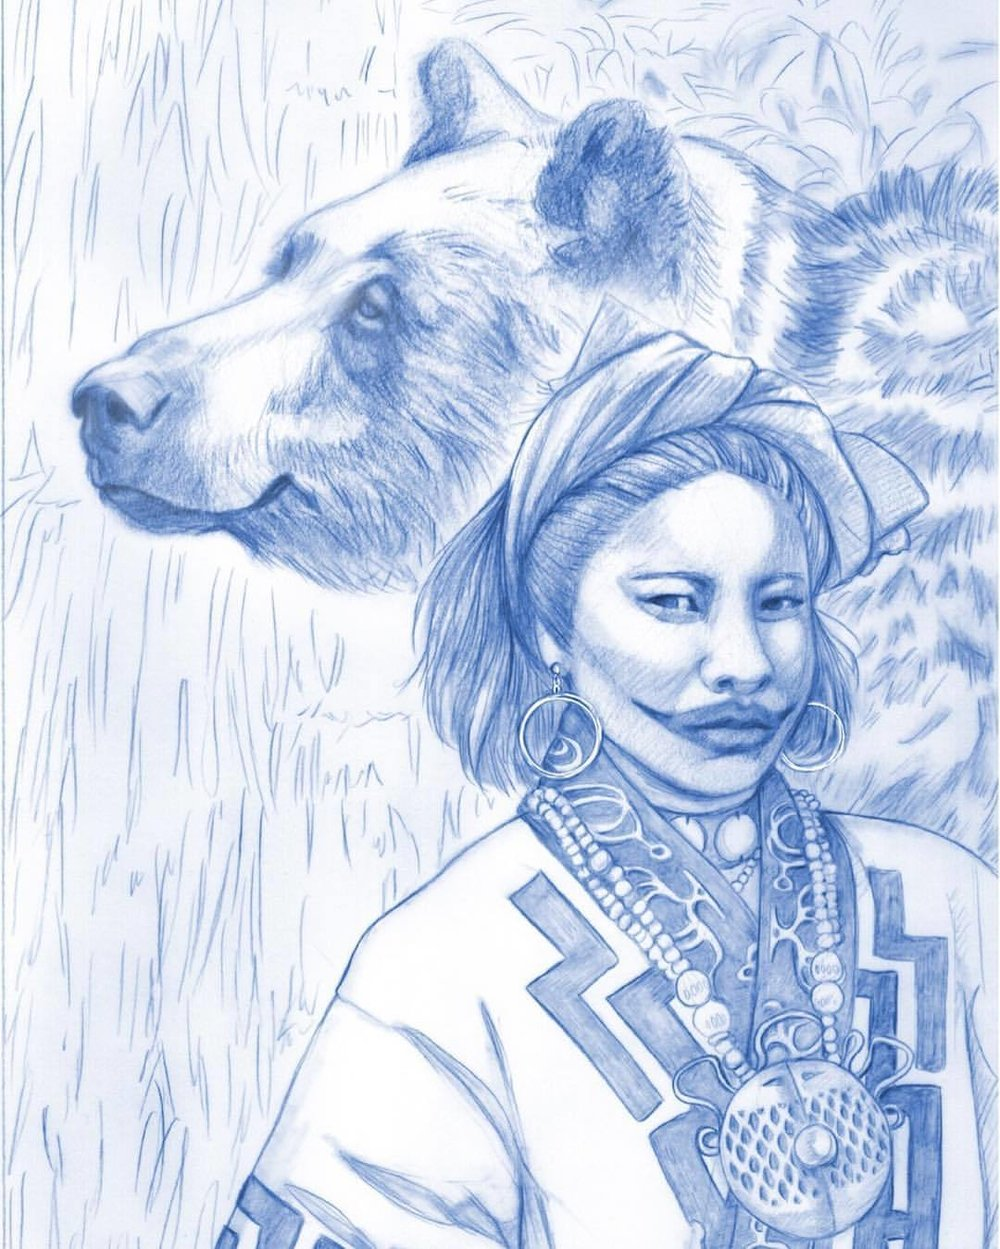 Final drawing for the Ainu people of Japan 🇯🇵. If you were wondering about the strange mouth, traditionally the Ainu women tattooed around their mouths, it was a sign of a woman's readiness for marriage (it would start with a small dot which was added to each year) it was frowned on and outlawed by feudal Japan but they continued the practice right up to the early 20th Century. @blueangelpublishing #oraclecard #ainu #bear #liptattoo